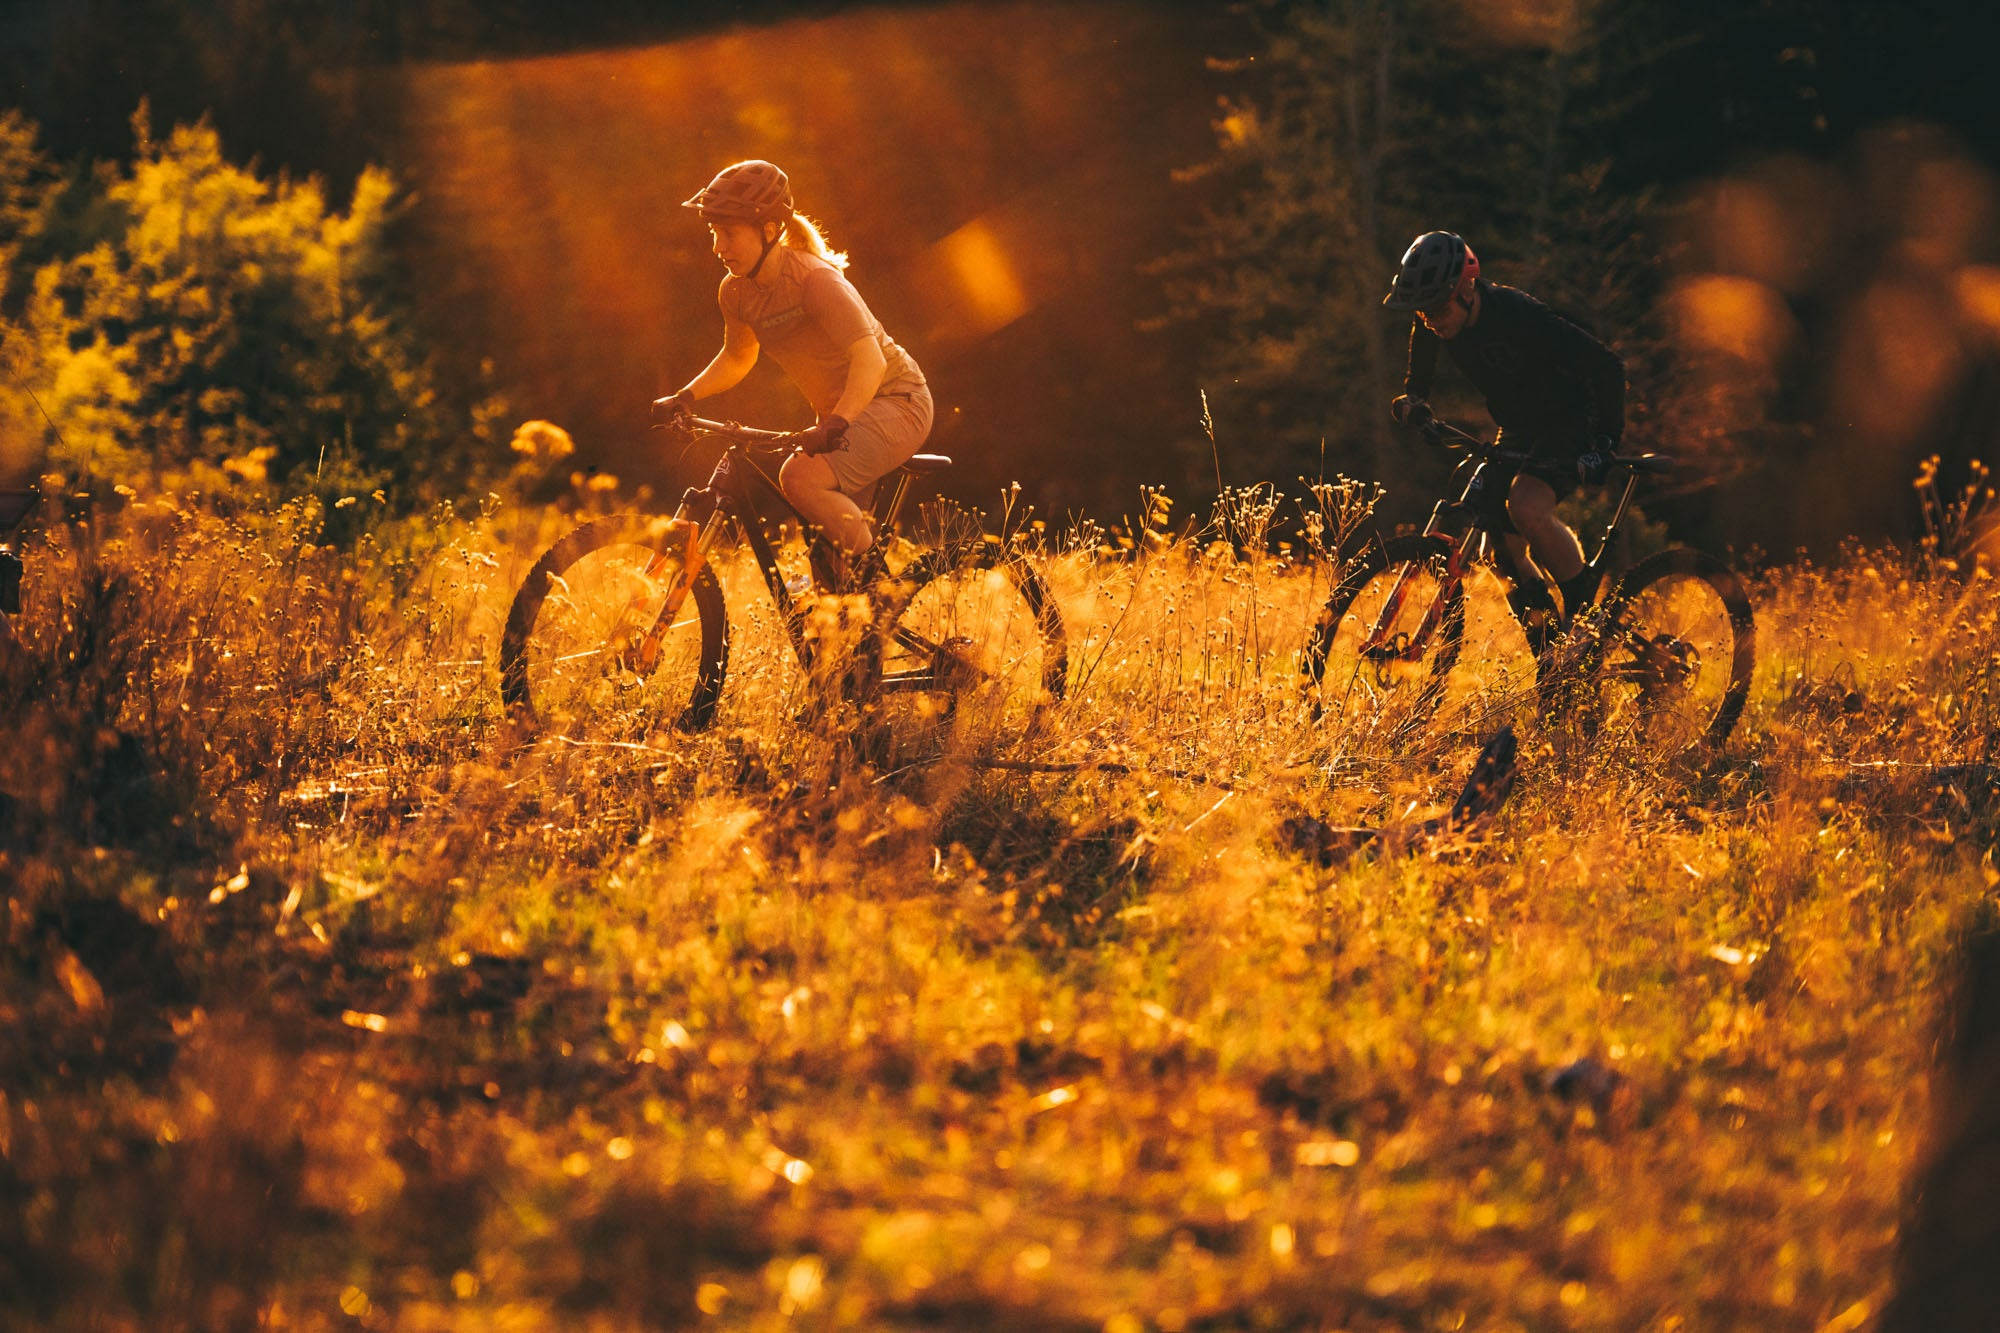 Andreane Lanthier Nadeau and Remi Gauvin rides the Element in British Columbia, Canada